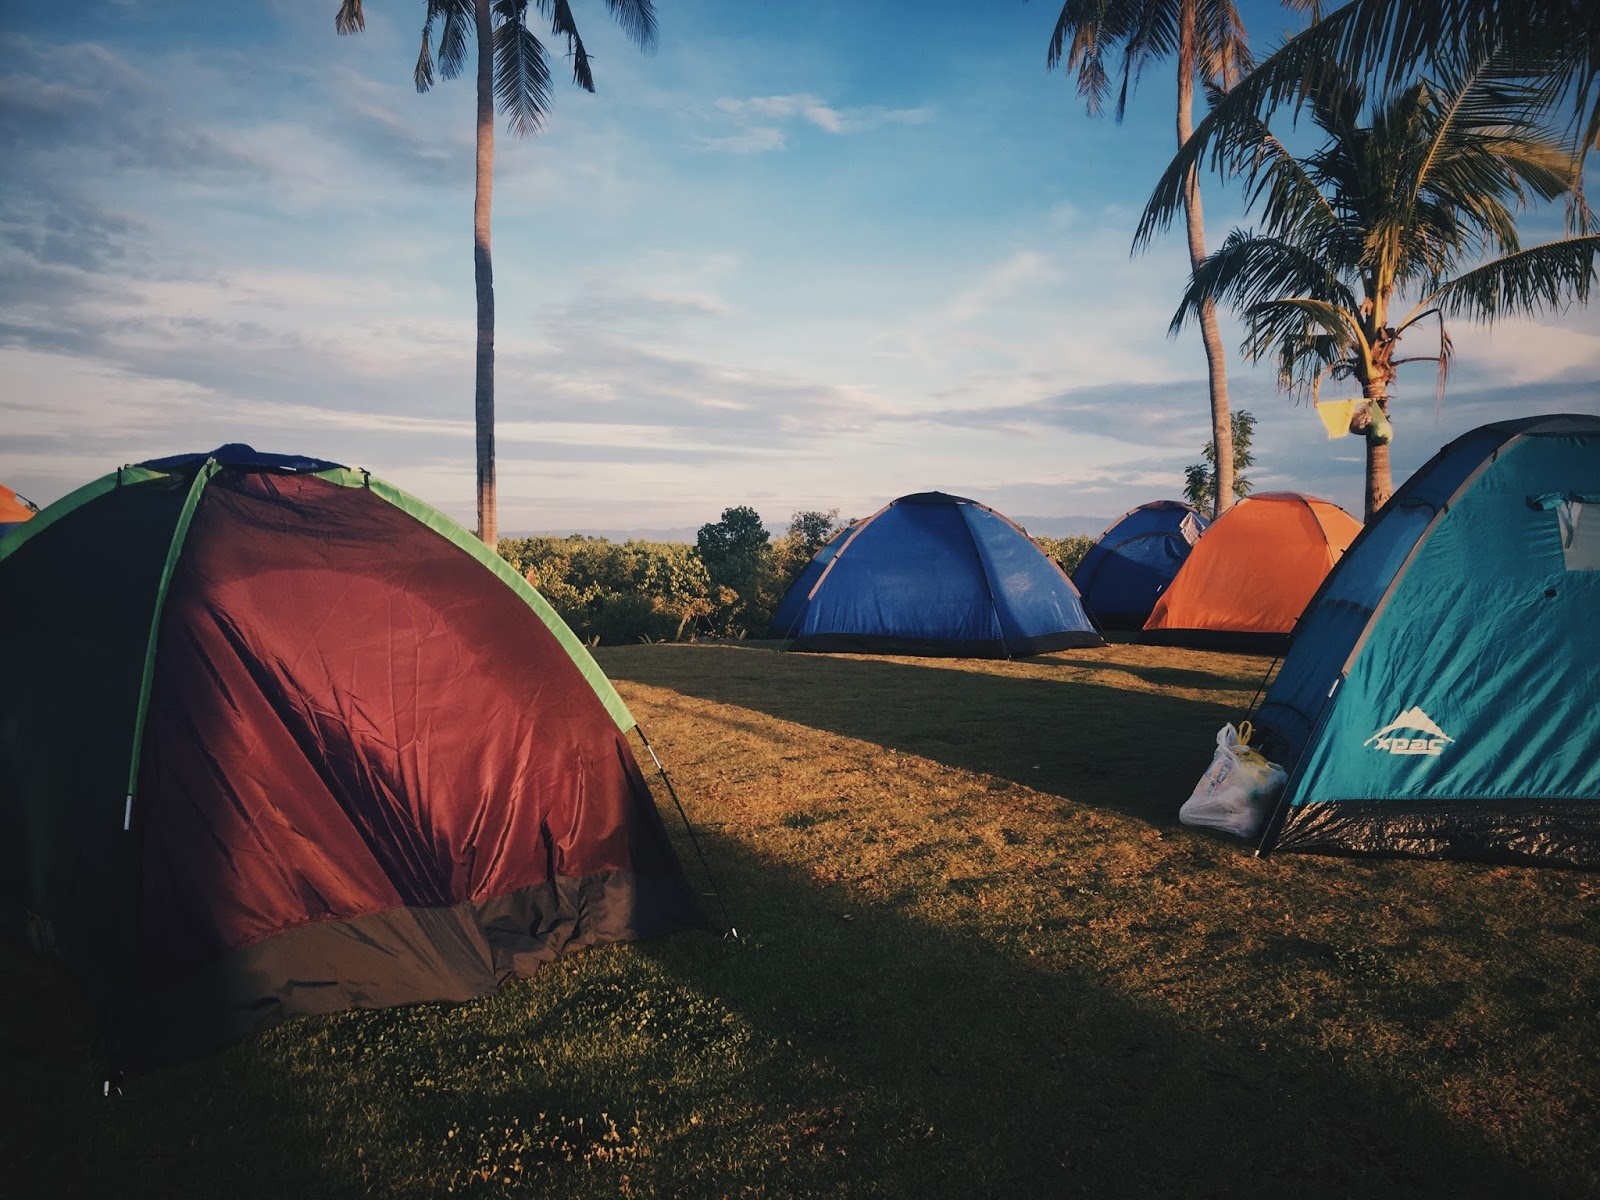 The contrast of colors of the tents and the lush greens of the bermuda made the area appealing. The bermuda also served as a perfect cushion for our tents. & Is Payag sa Asinan Eco-tourism in Olango Island a yay or nay ...